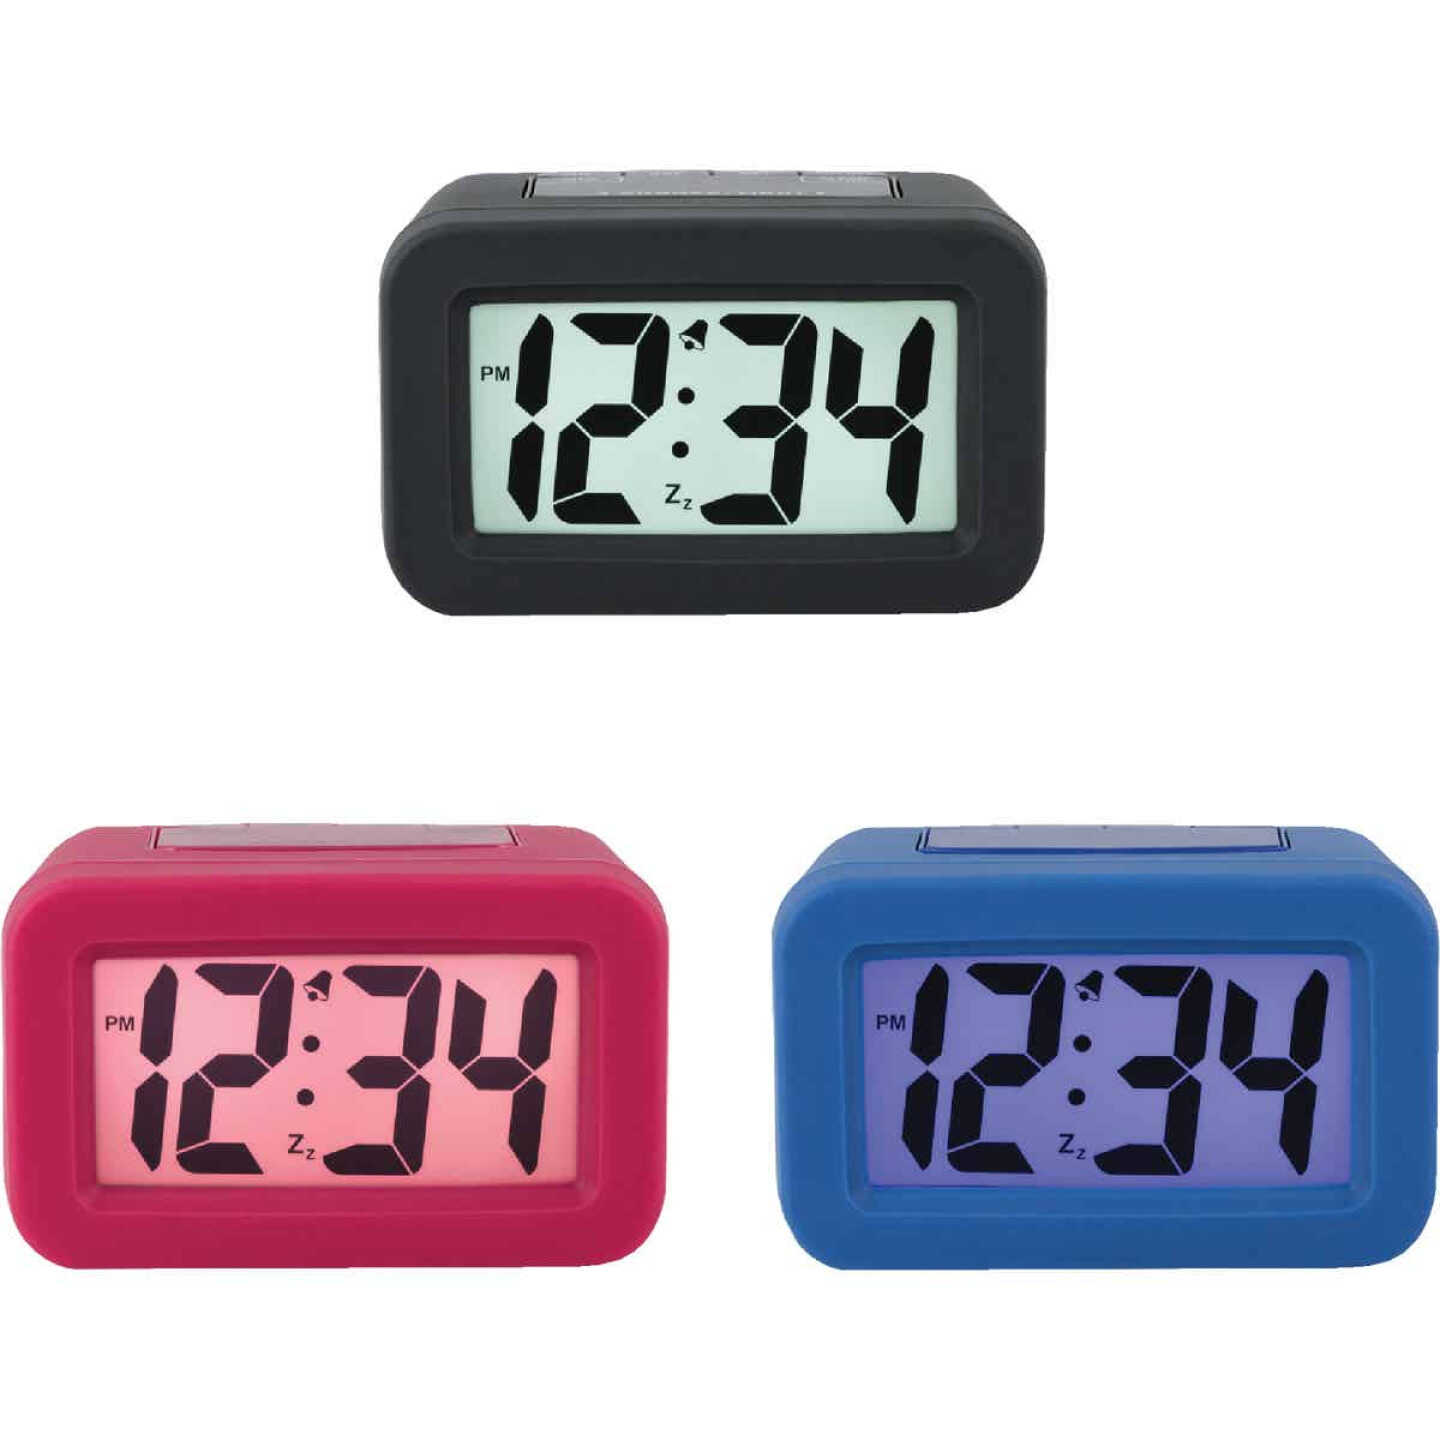 La Crosse Technology Silicon LCD Battery Operated Alarm Clock Image 1